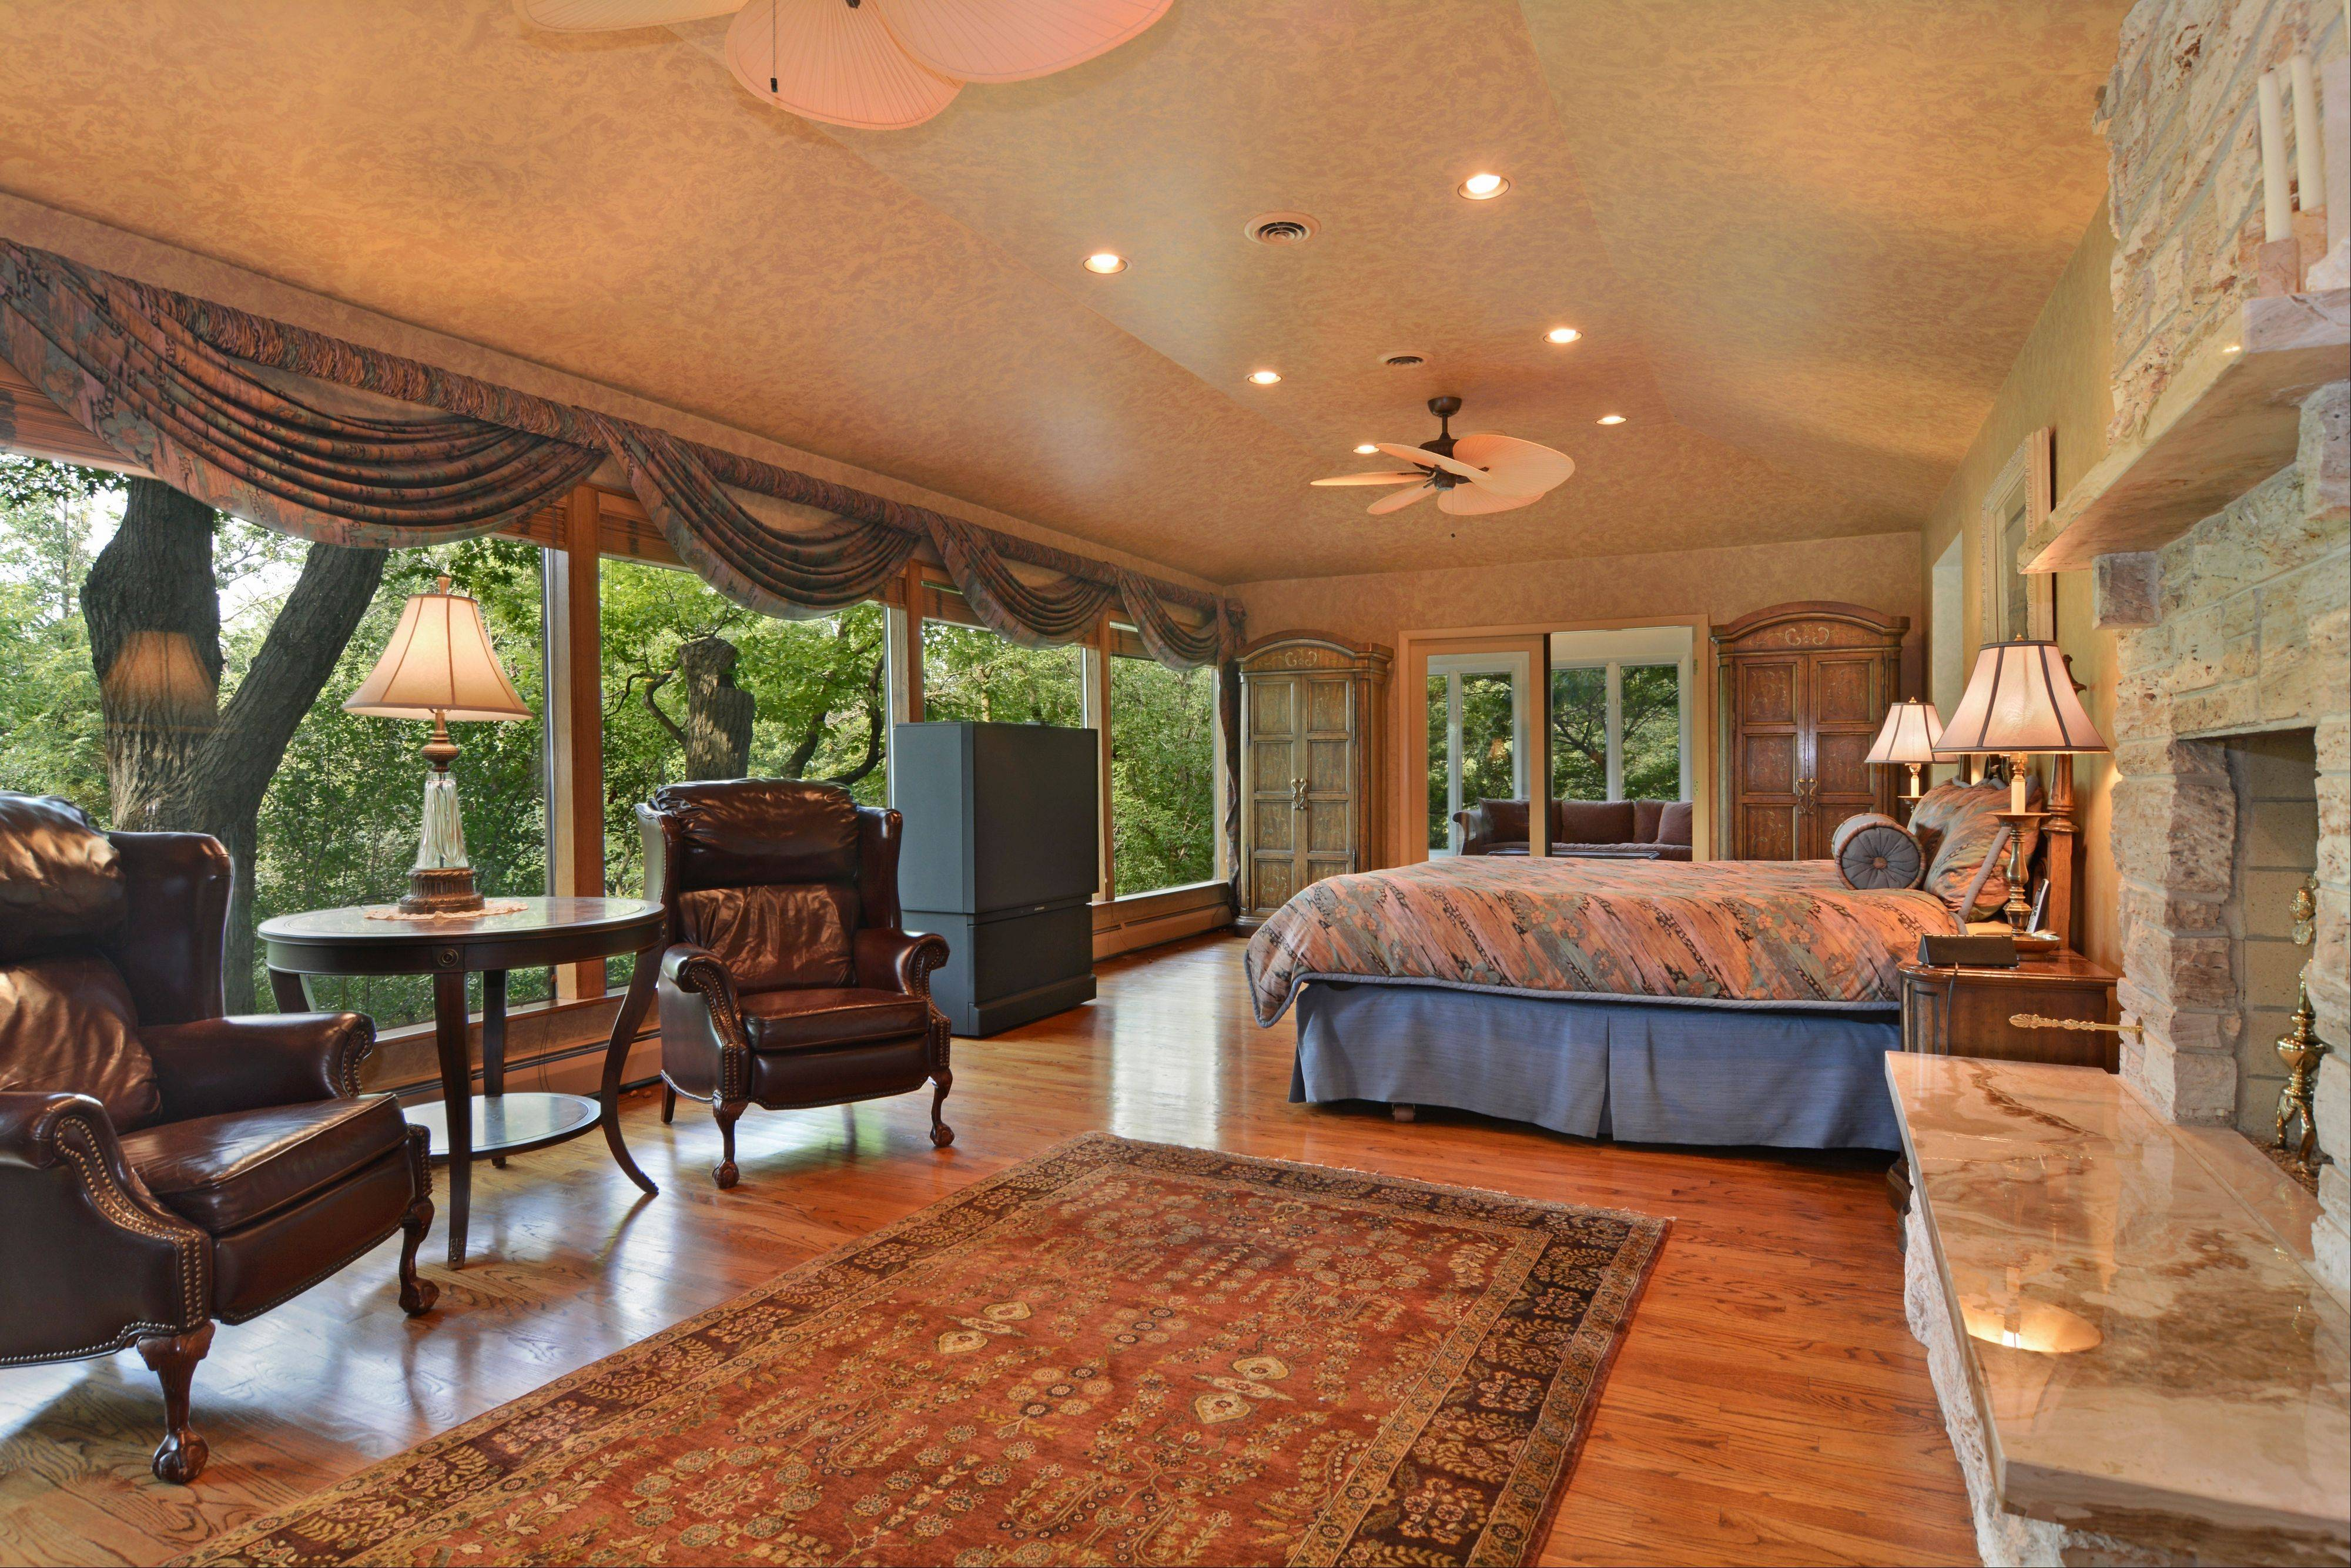 The second-floor master bedroom suite overlooks the trees with its wall of windows.